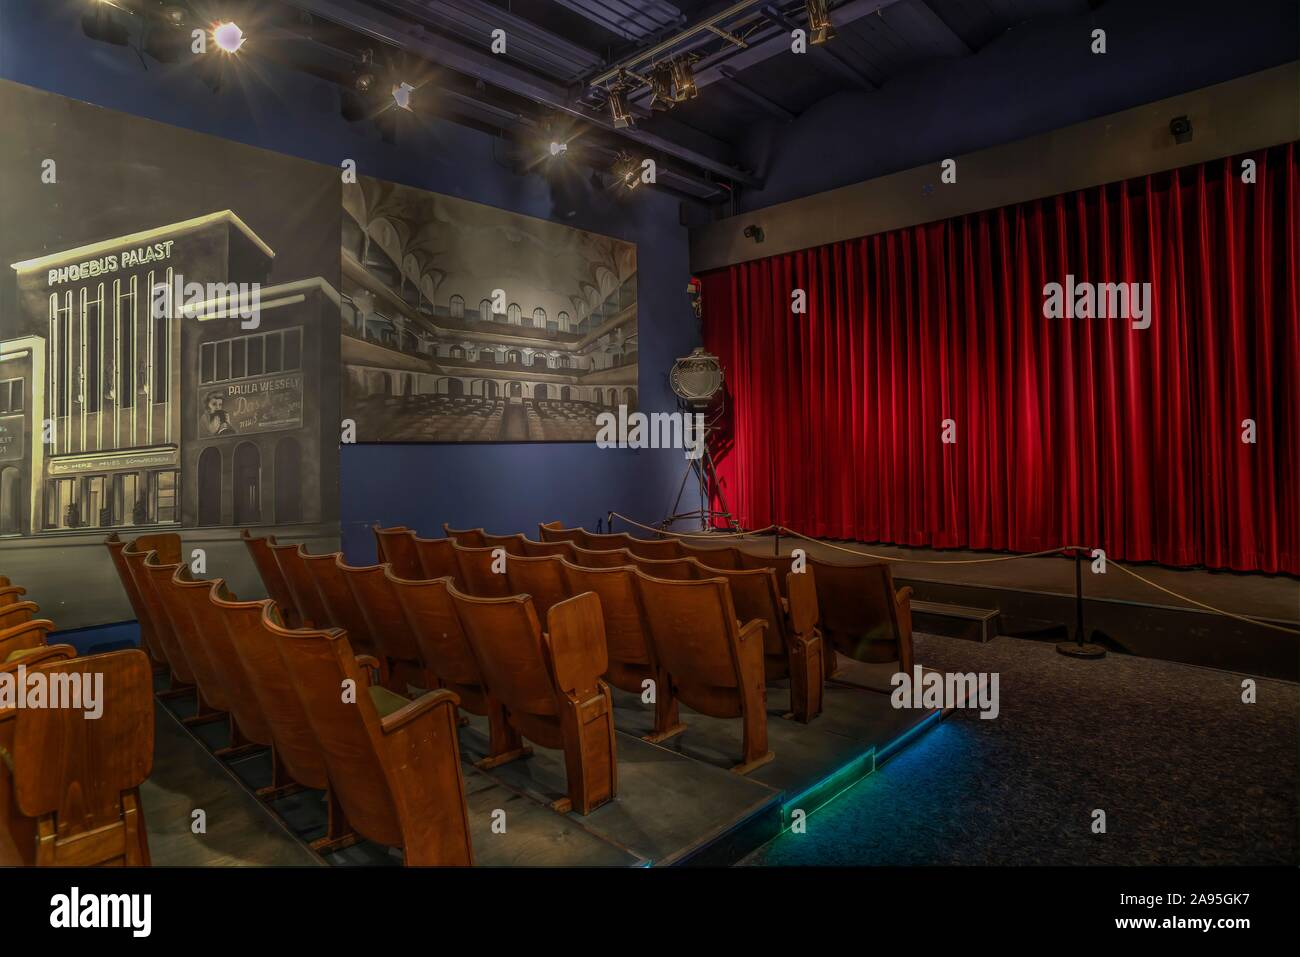 Historical cinema, Noris Theatre of the 1920s, Museum Industrial Culture, Nuremberg, Middle Franconia, Bavaria, Germany Stock Photo